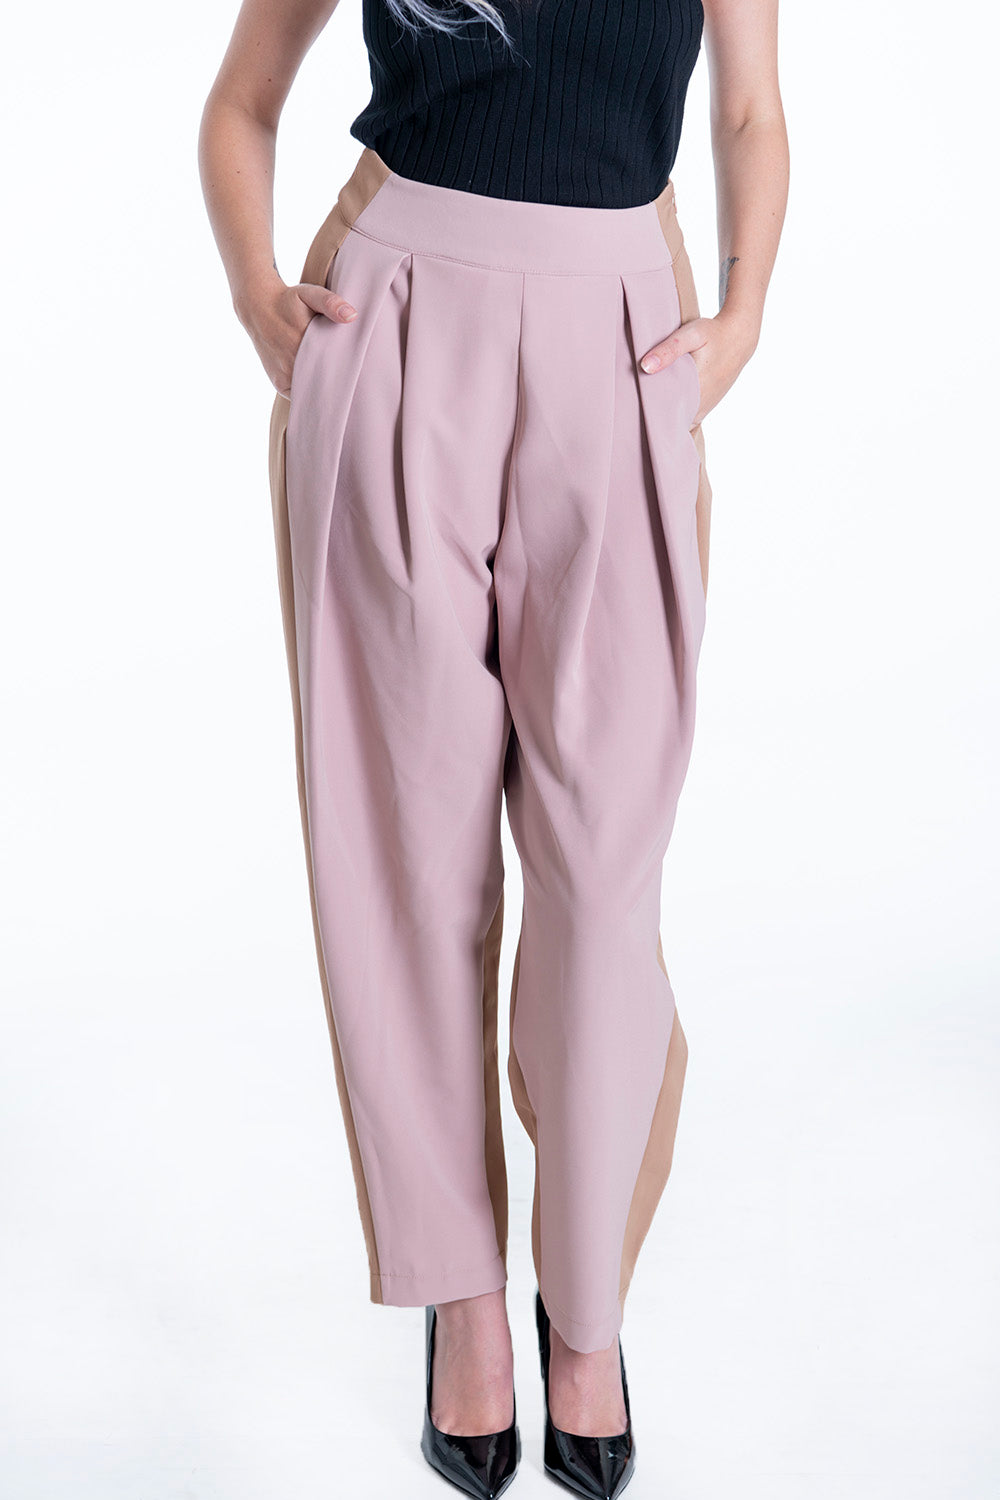 Lolamay co-ord high waist pink  trousers with pink panel